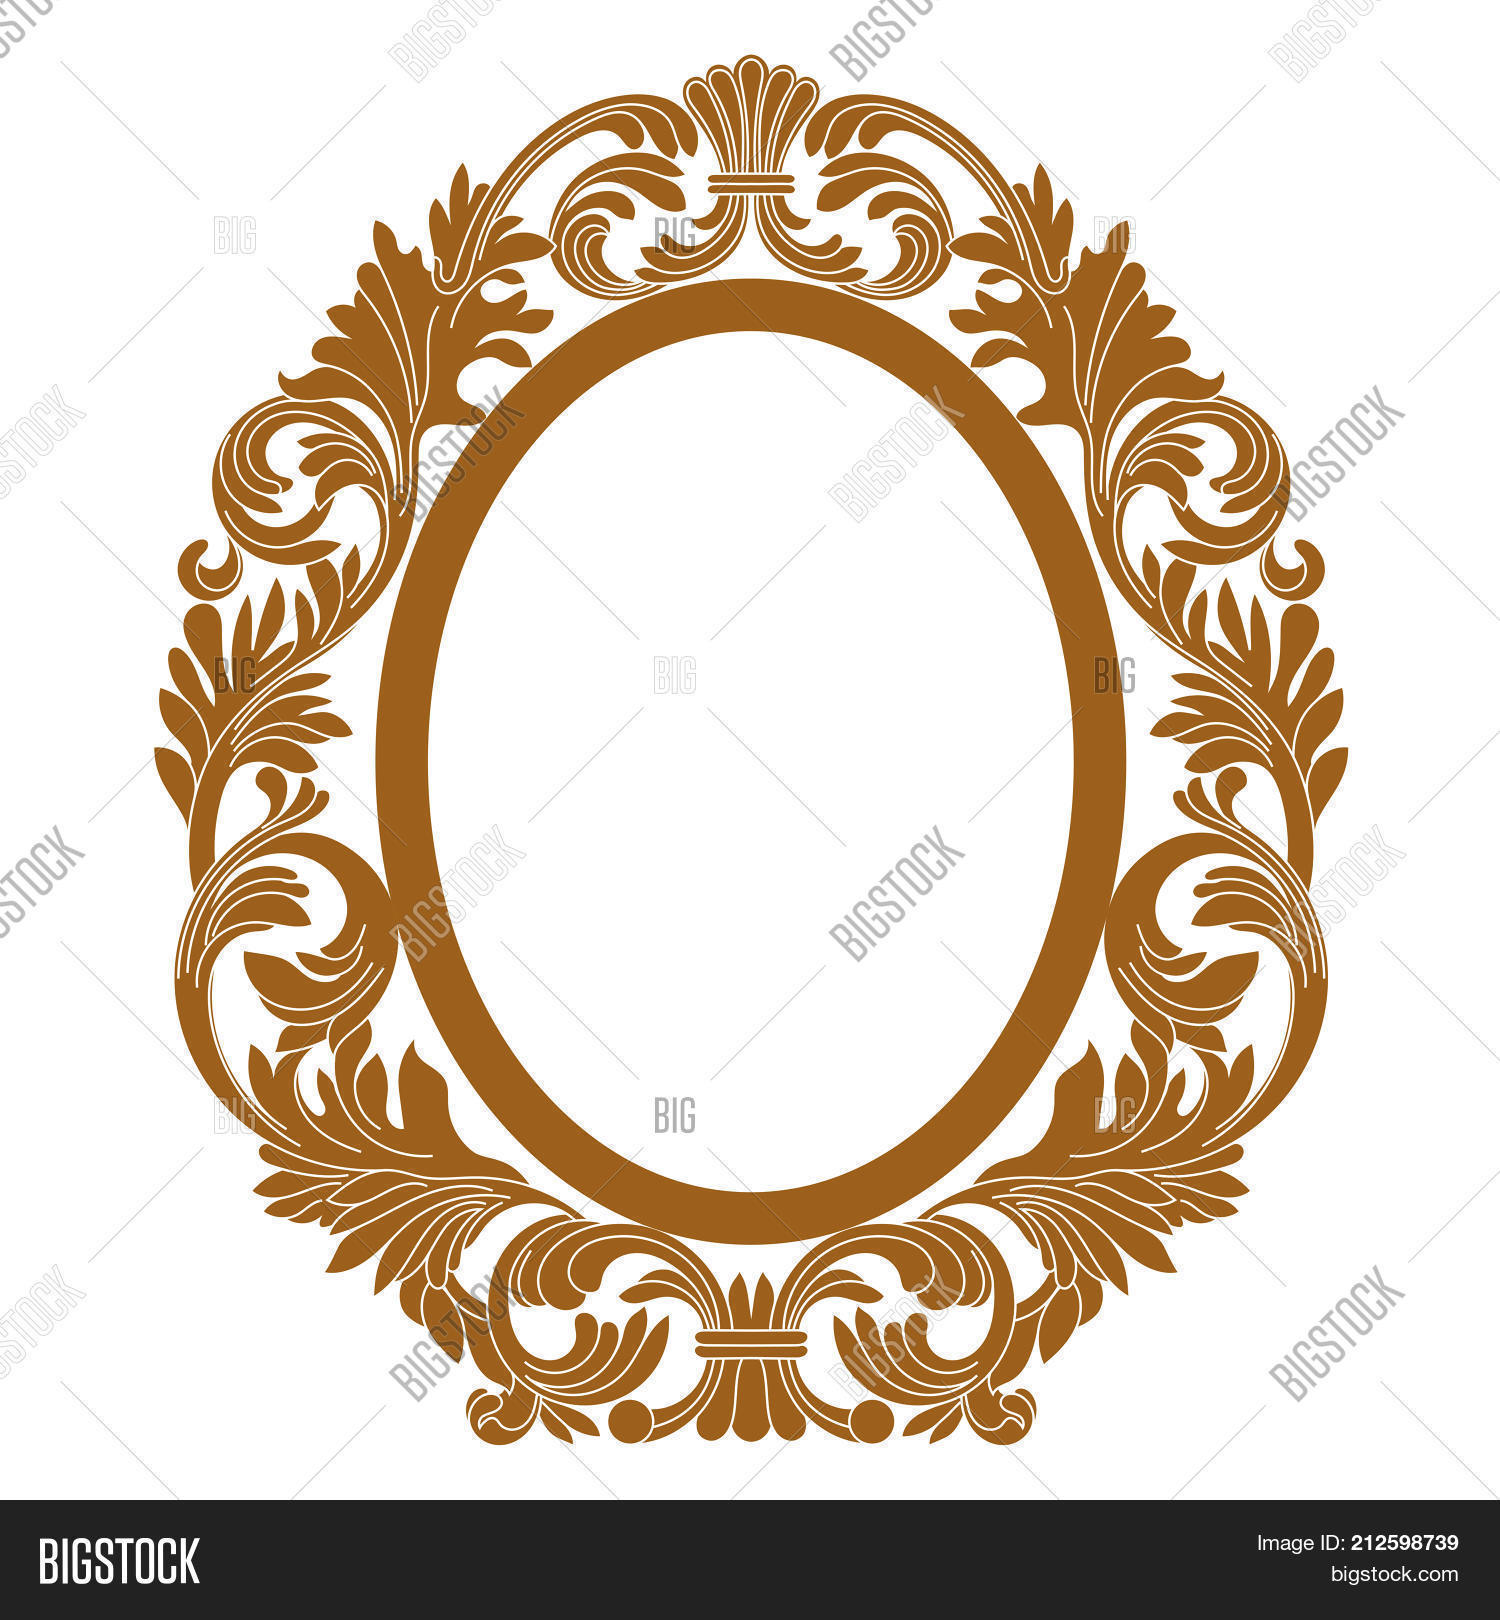 Golden Vintage Oval Pattern Frame Border Engraving